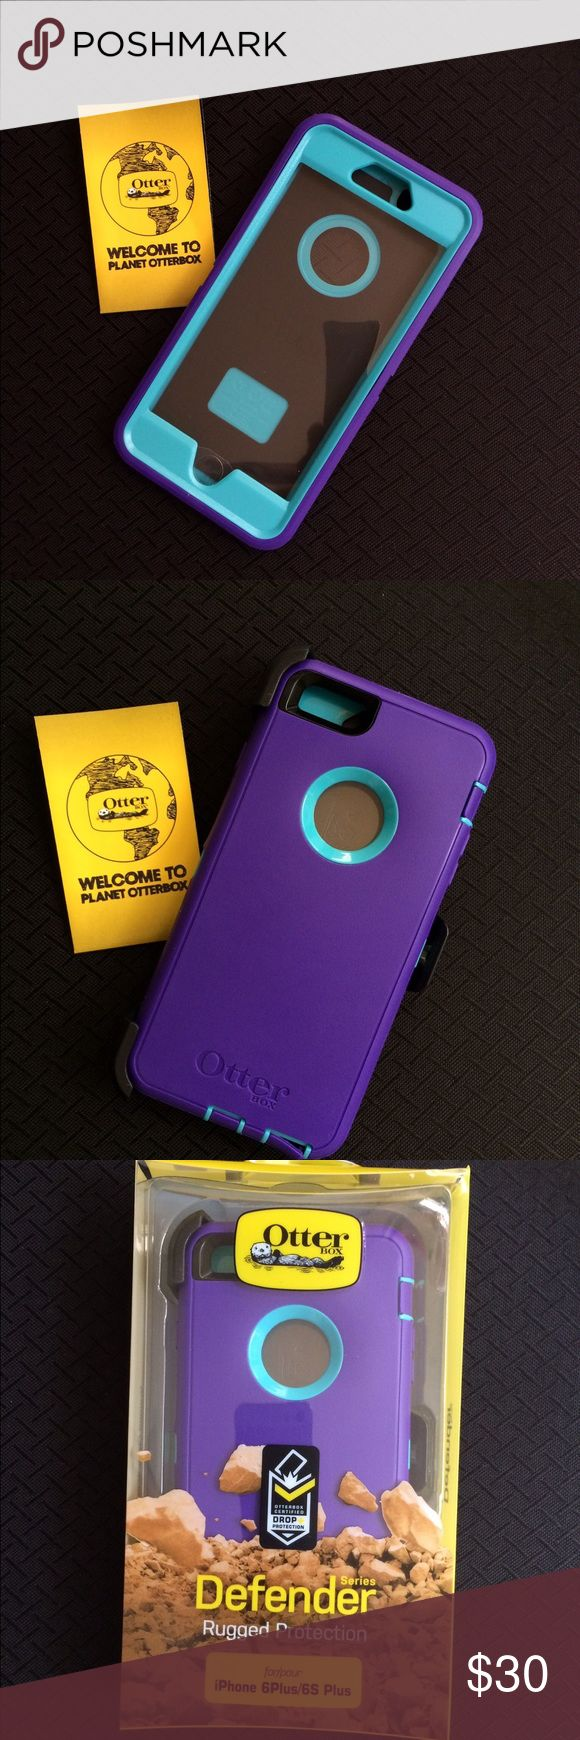 iPhone 6 Plus Otterbox Defender Case Otter-box  For 6 & 6S   ✅ ✅Please read before buying! ✅ Next Day Shipping !! ✅Only for iPhone 6 & 6S  ❌Not iPhone Plus & 6S Plus    Customer service is my main goal, I am always willing to make my customer happy if a problem arises. Thank you.  Otter Box Certified Drop+ Protection  you can be sure your device is protected from the wear and tear of everyday use. OtterBox Accessories